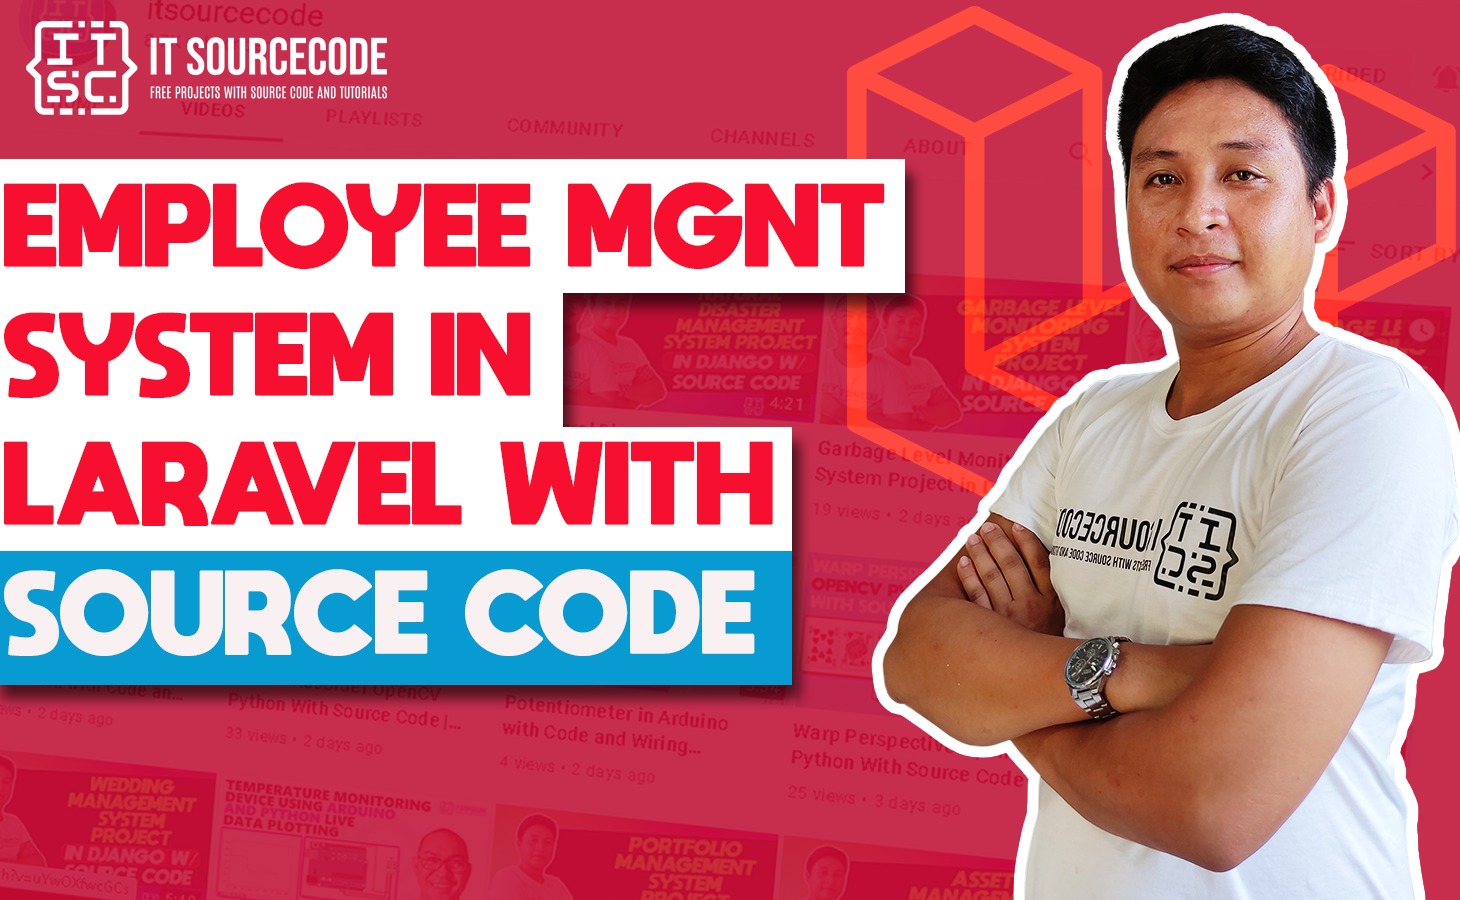 Employee Management System in Laravel With Source Code